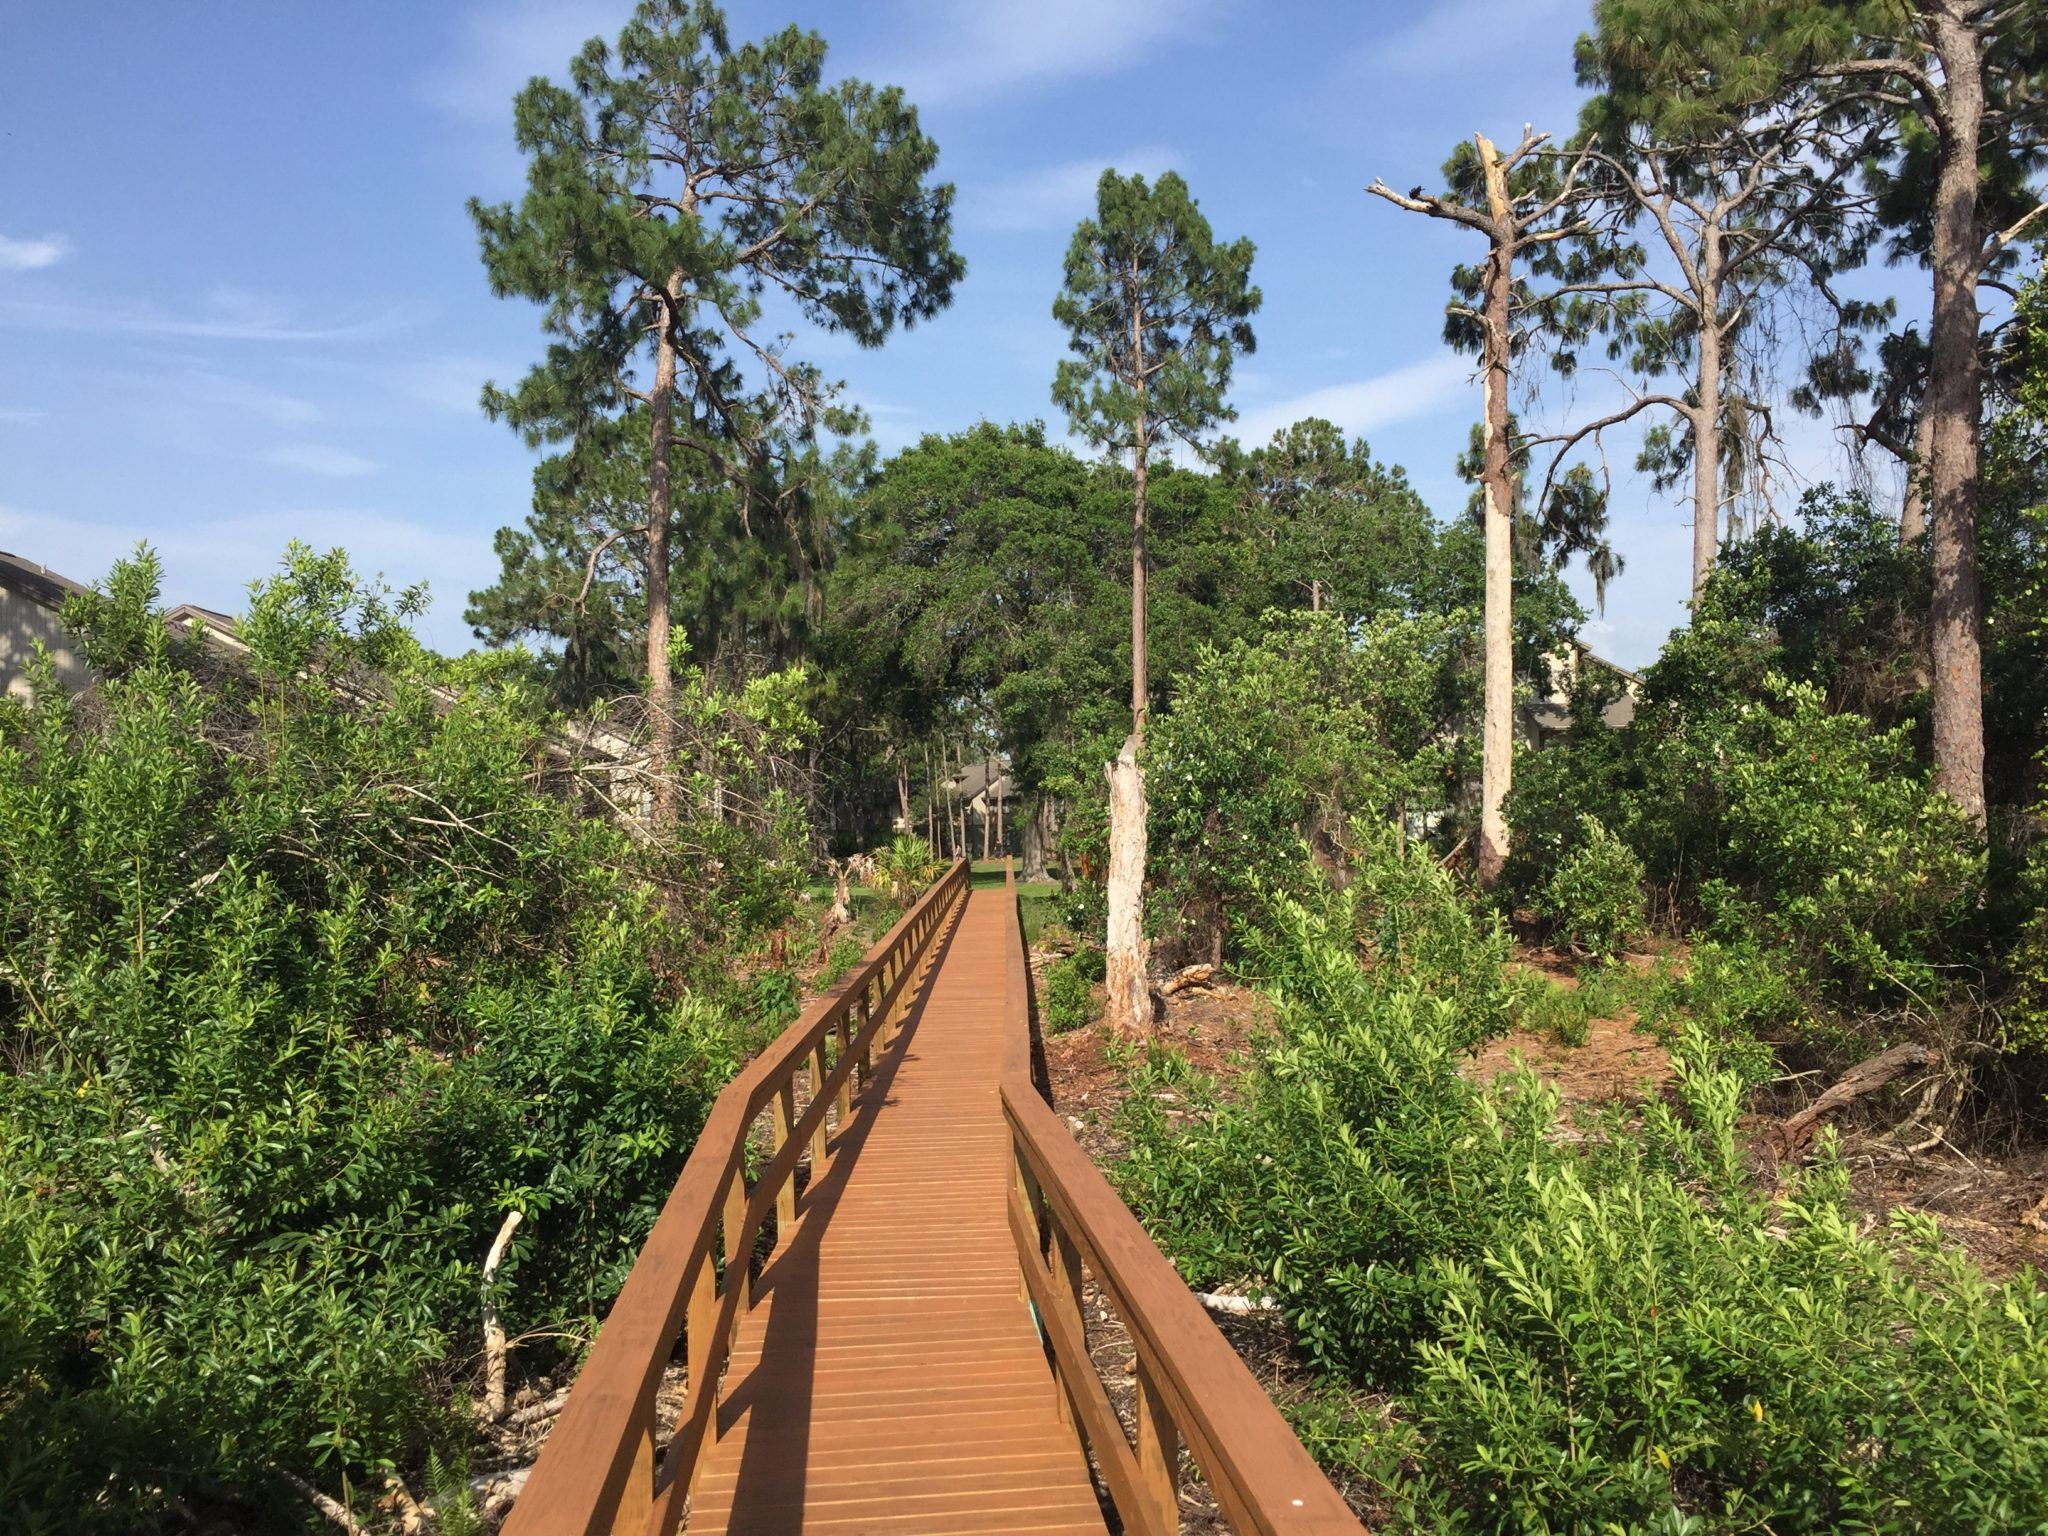 A long commercial style timber boardwalk that is surrounded by trees